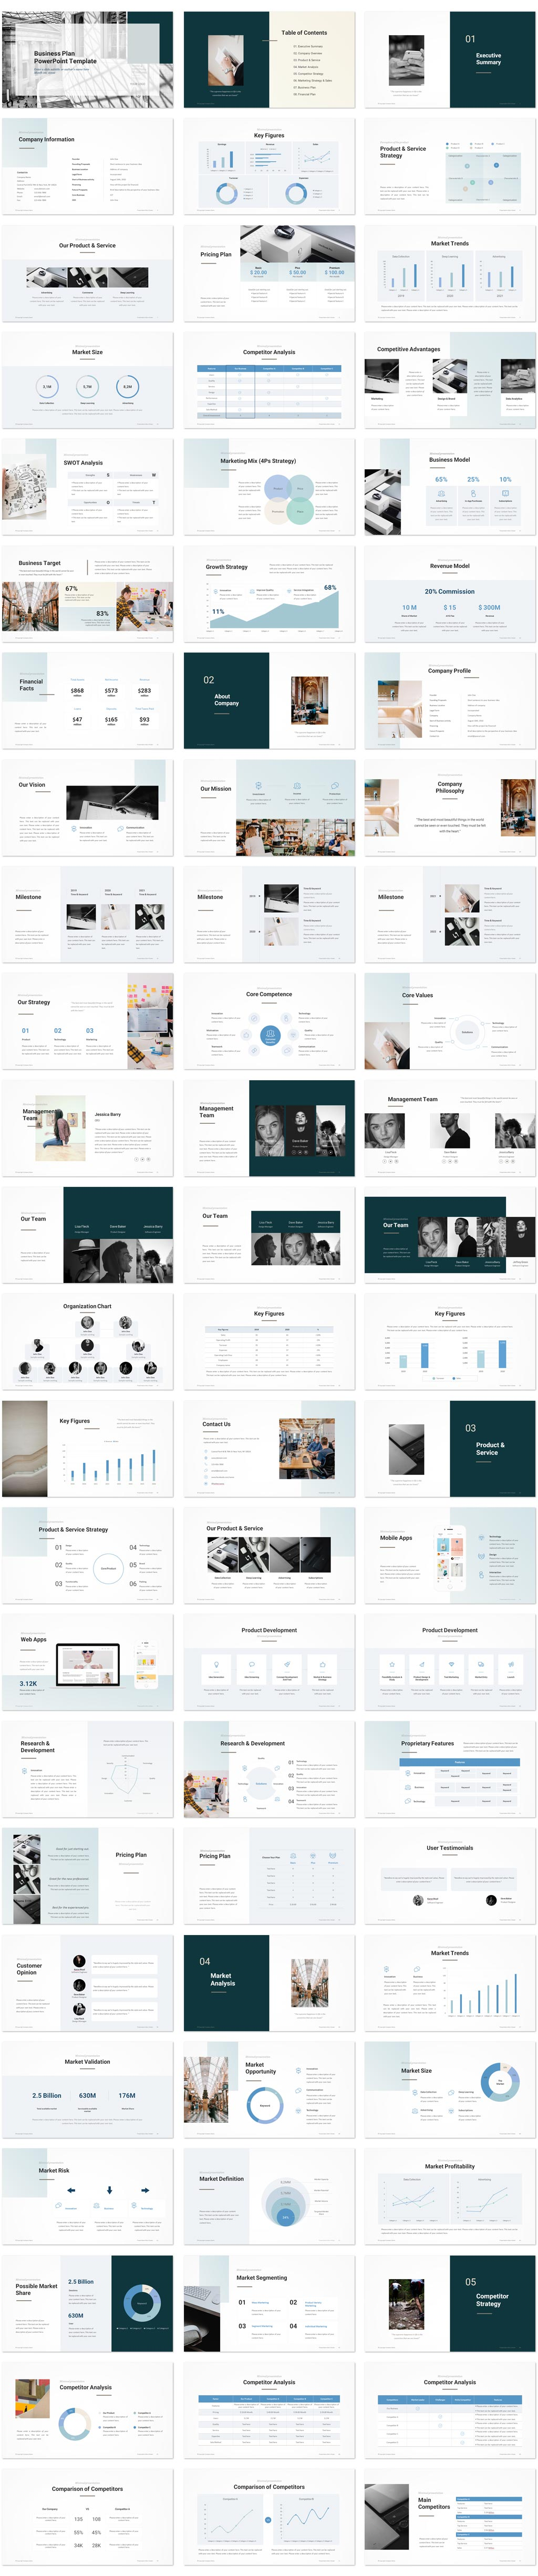 Business Plan PowerPoint Template